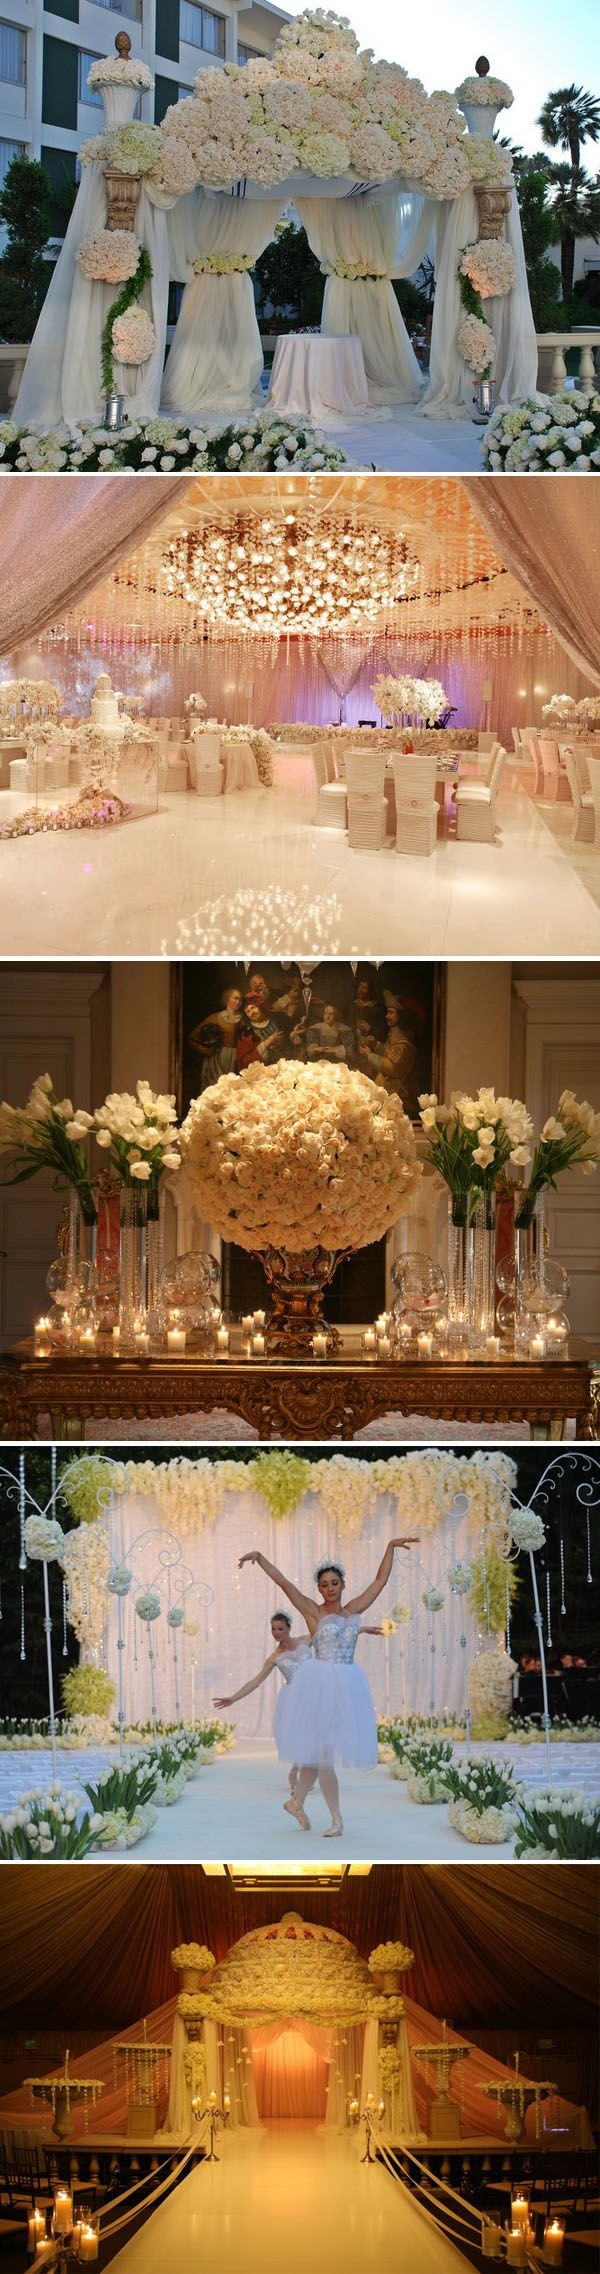 Wedding decorations luxury   best Wedding likes images on Pinterest  Wedding ideas Cake